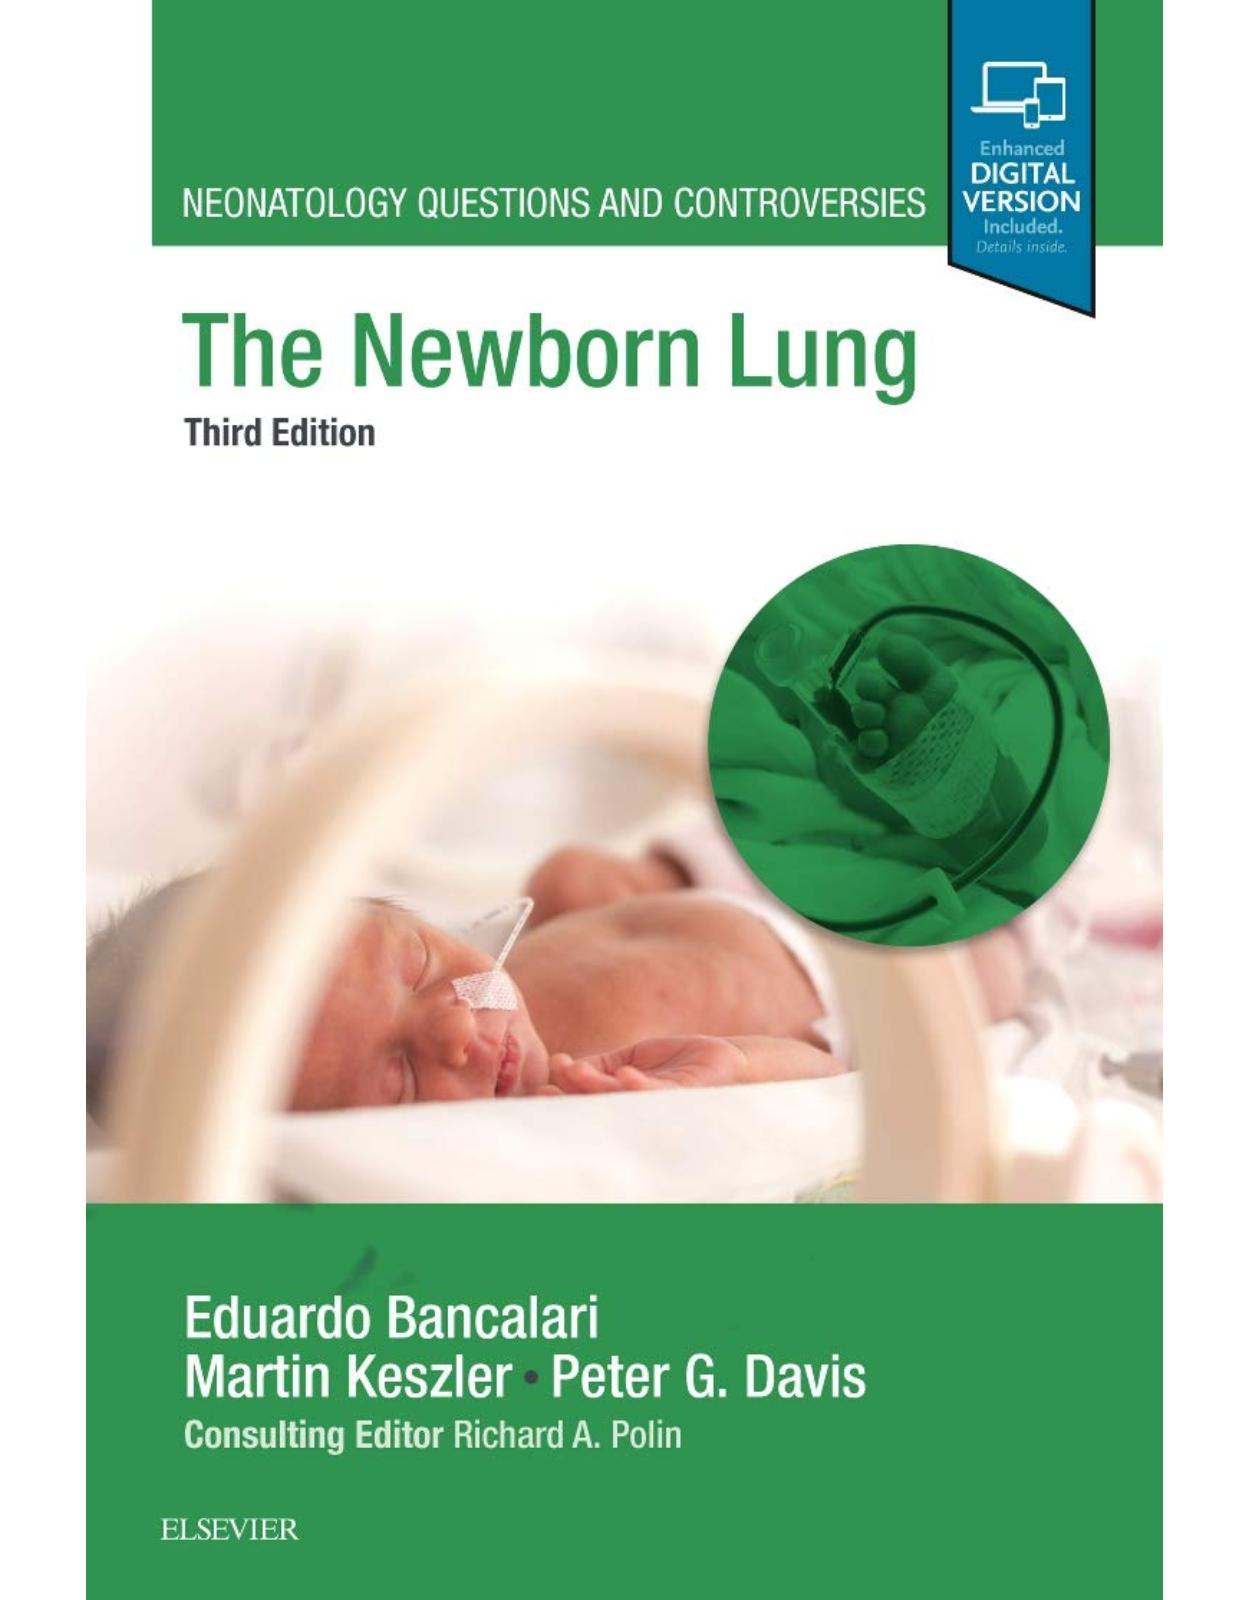 The Newborn Lung: Neonatology Questions and Controversies, 3e